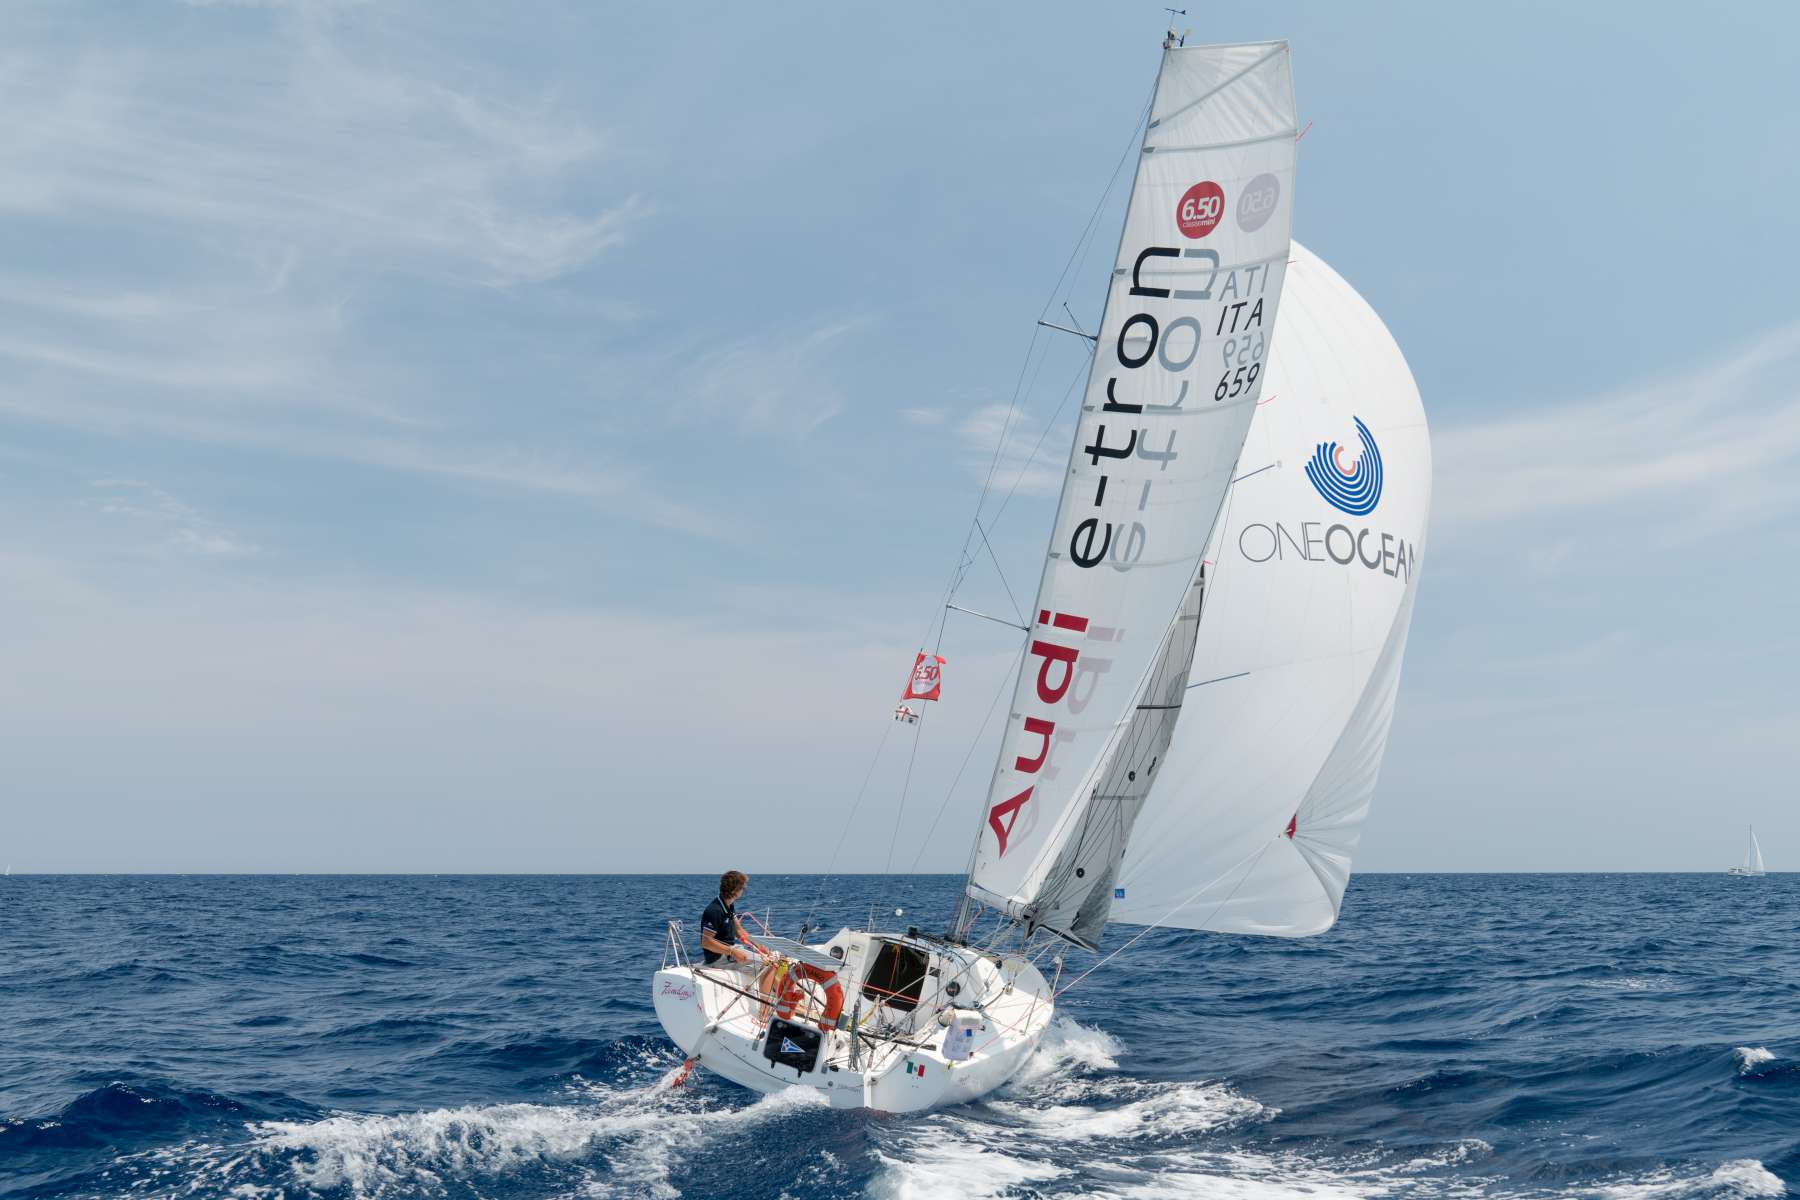 YCCS Sporting Member and OOF representative Daniele Nanni at Mini Transat 2019 on ITA 659 Audi E-Tron - NEWS - Yacht Club Costa Smeralda